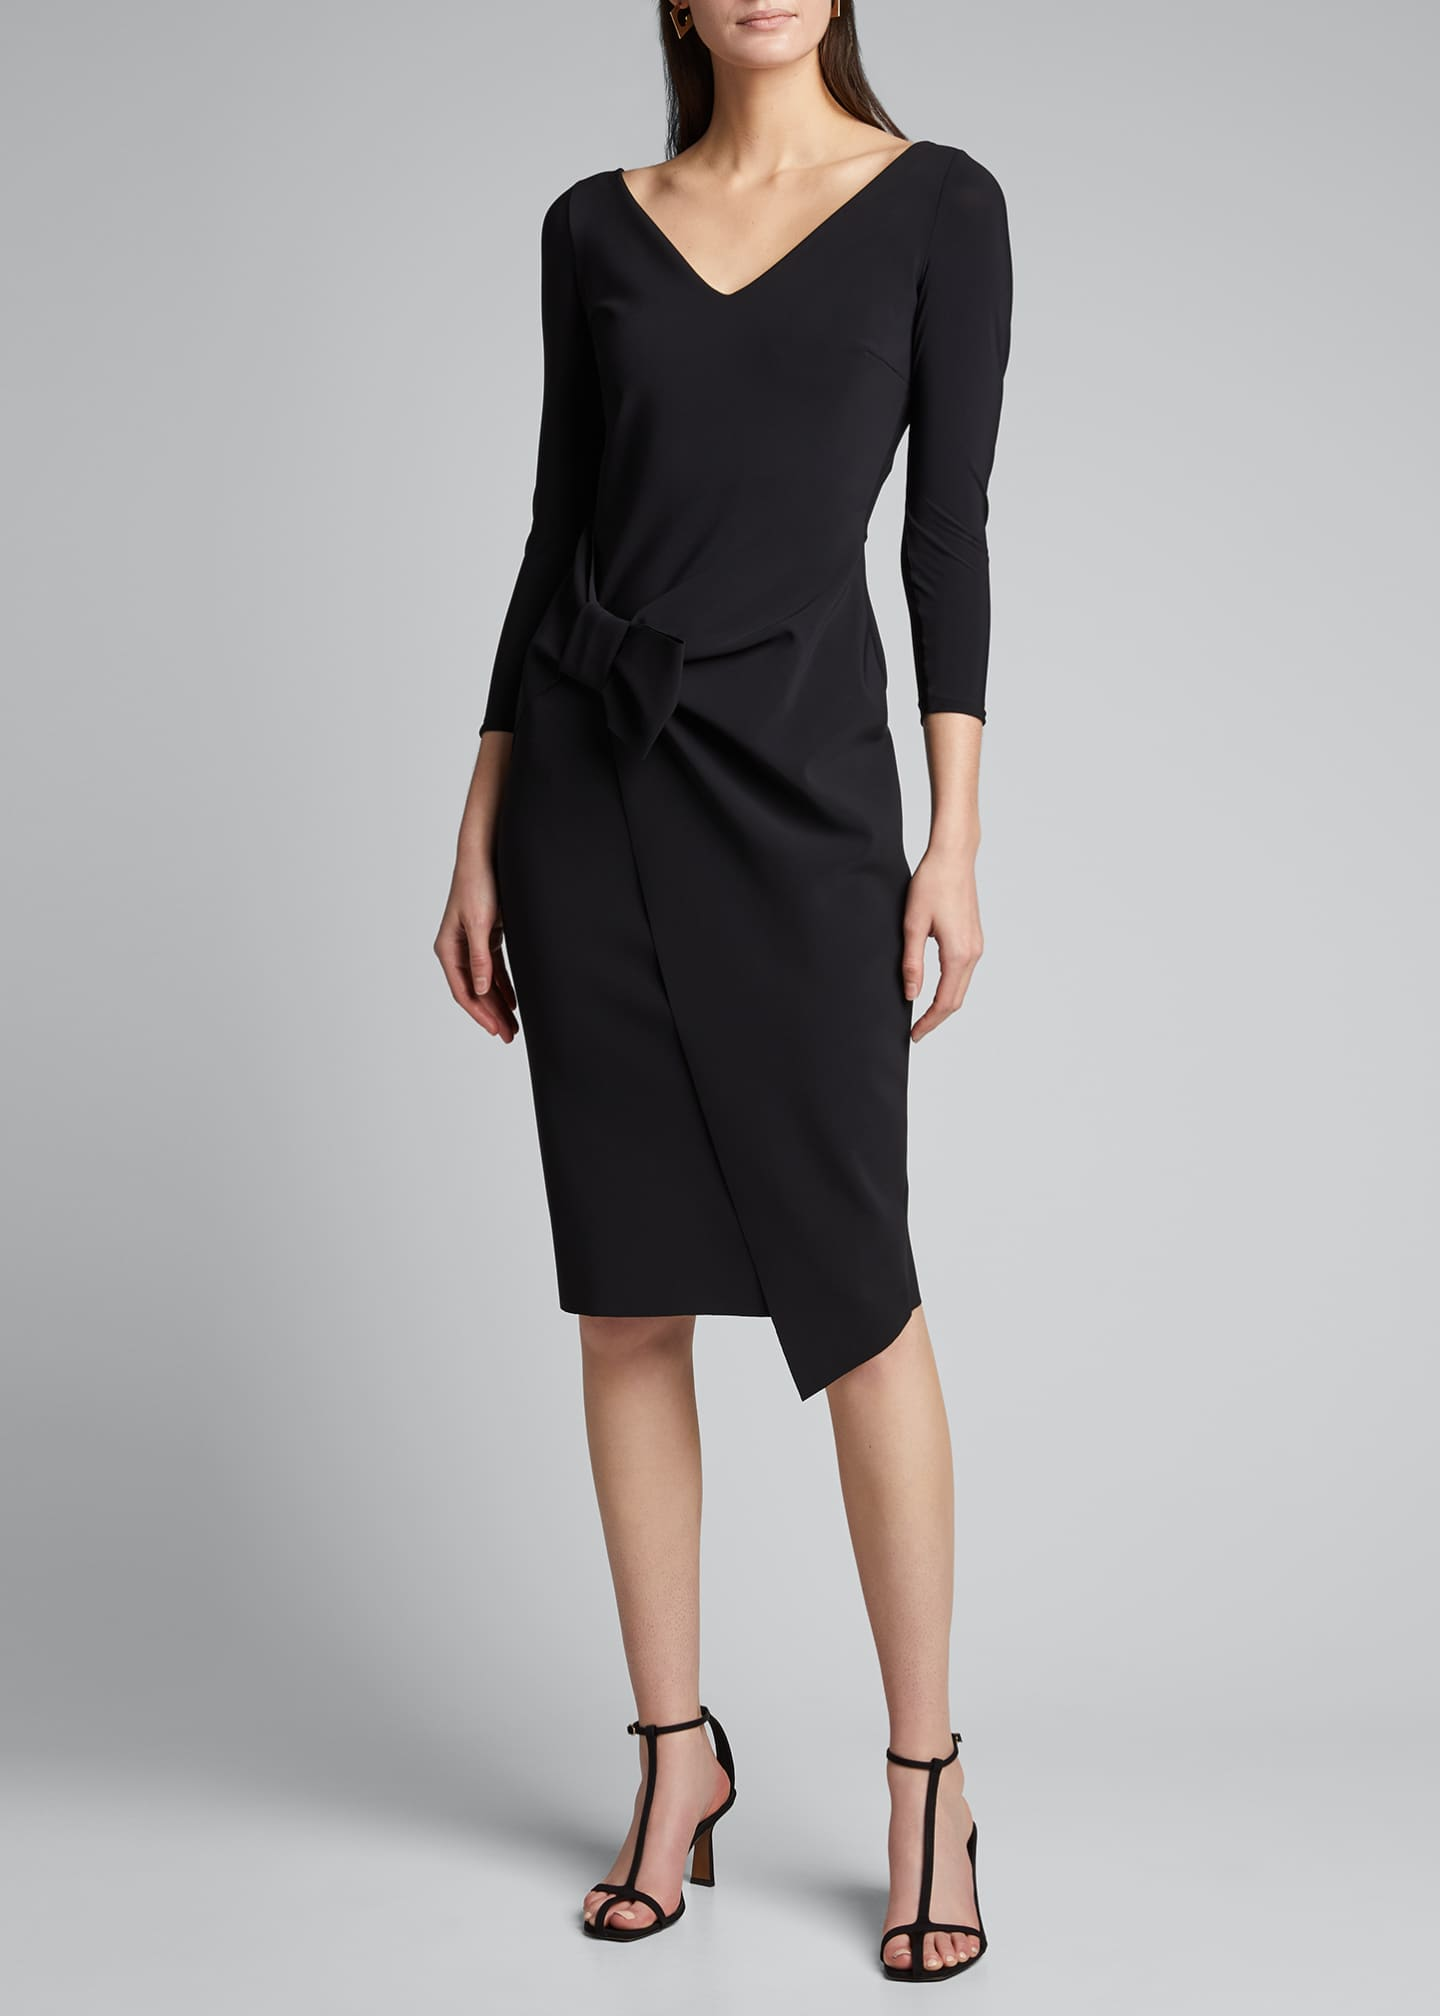 Image 3 of 5: Sotiria V-Neck Jersey Sheath Dress